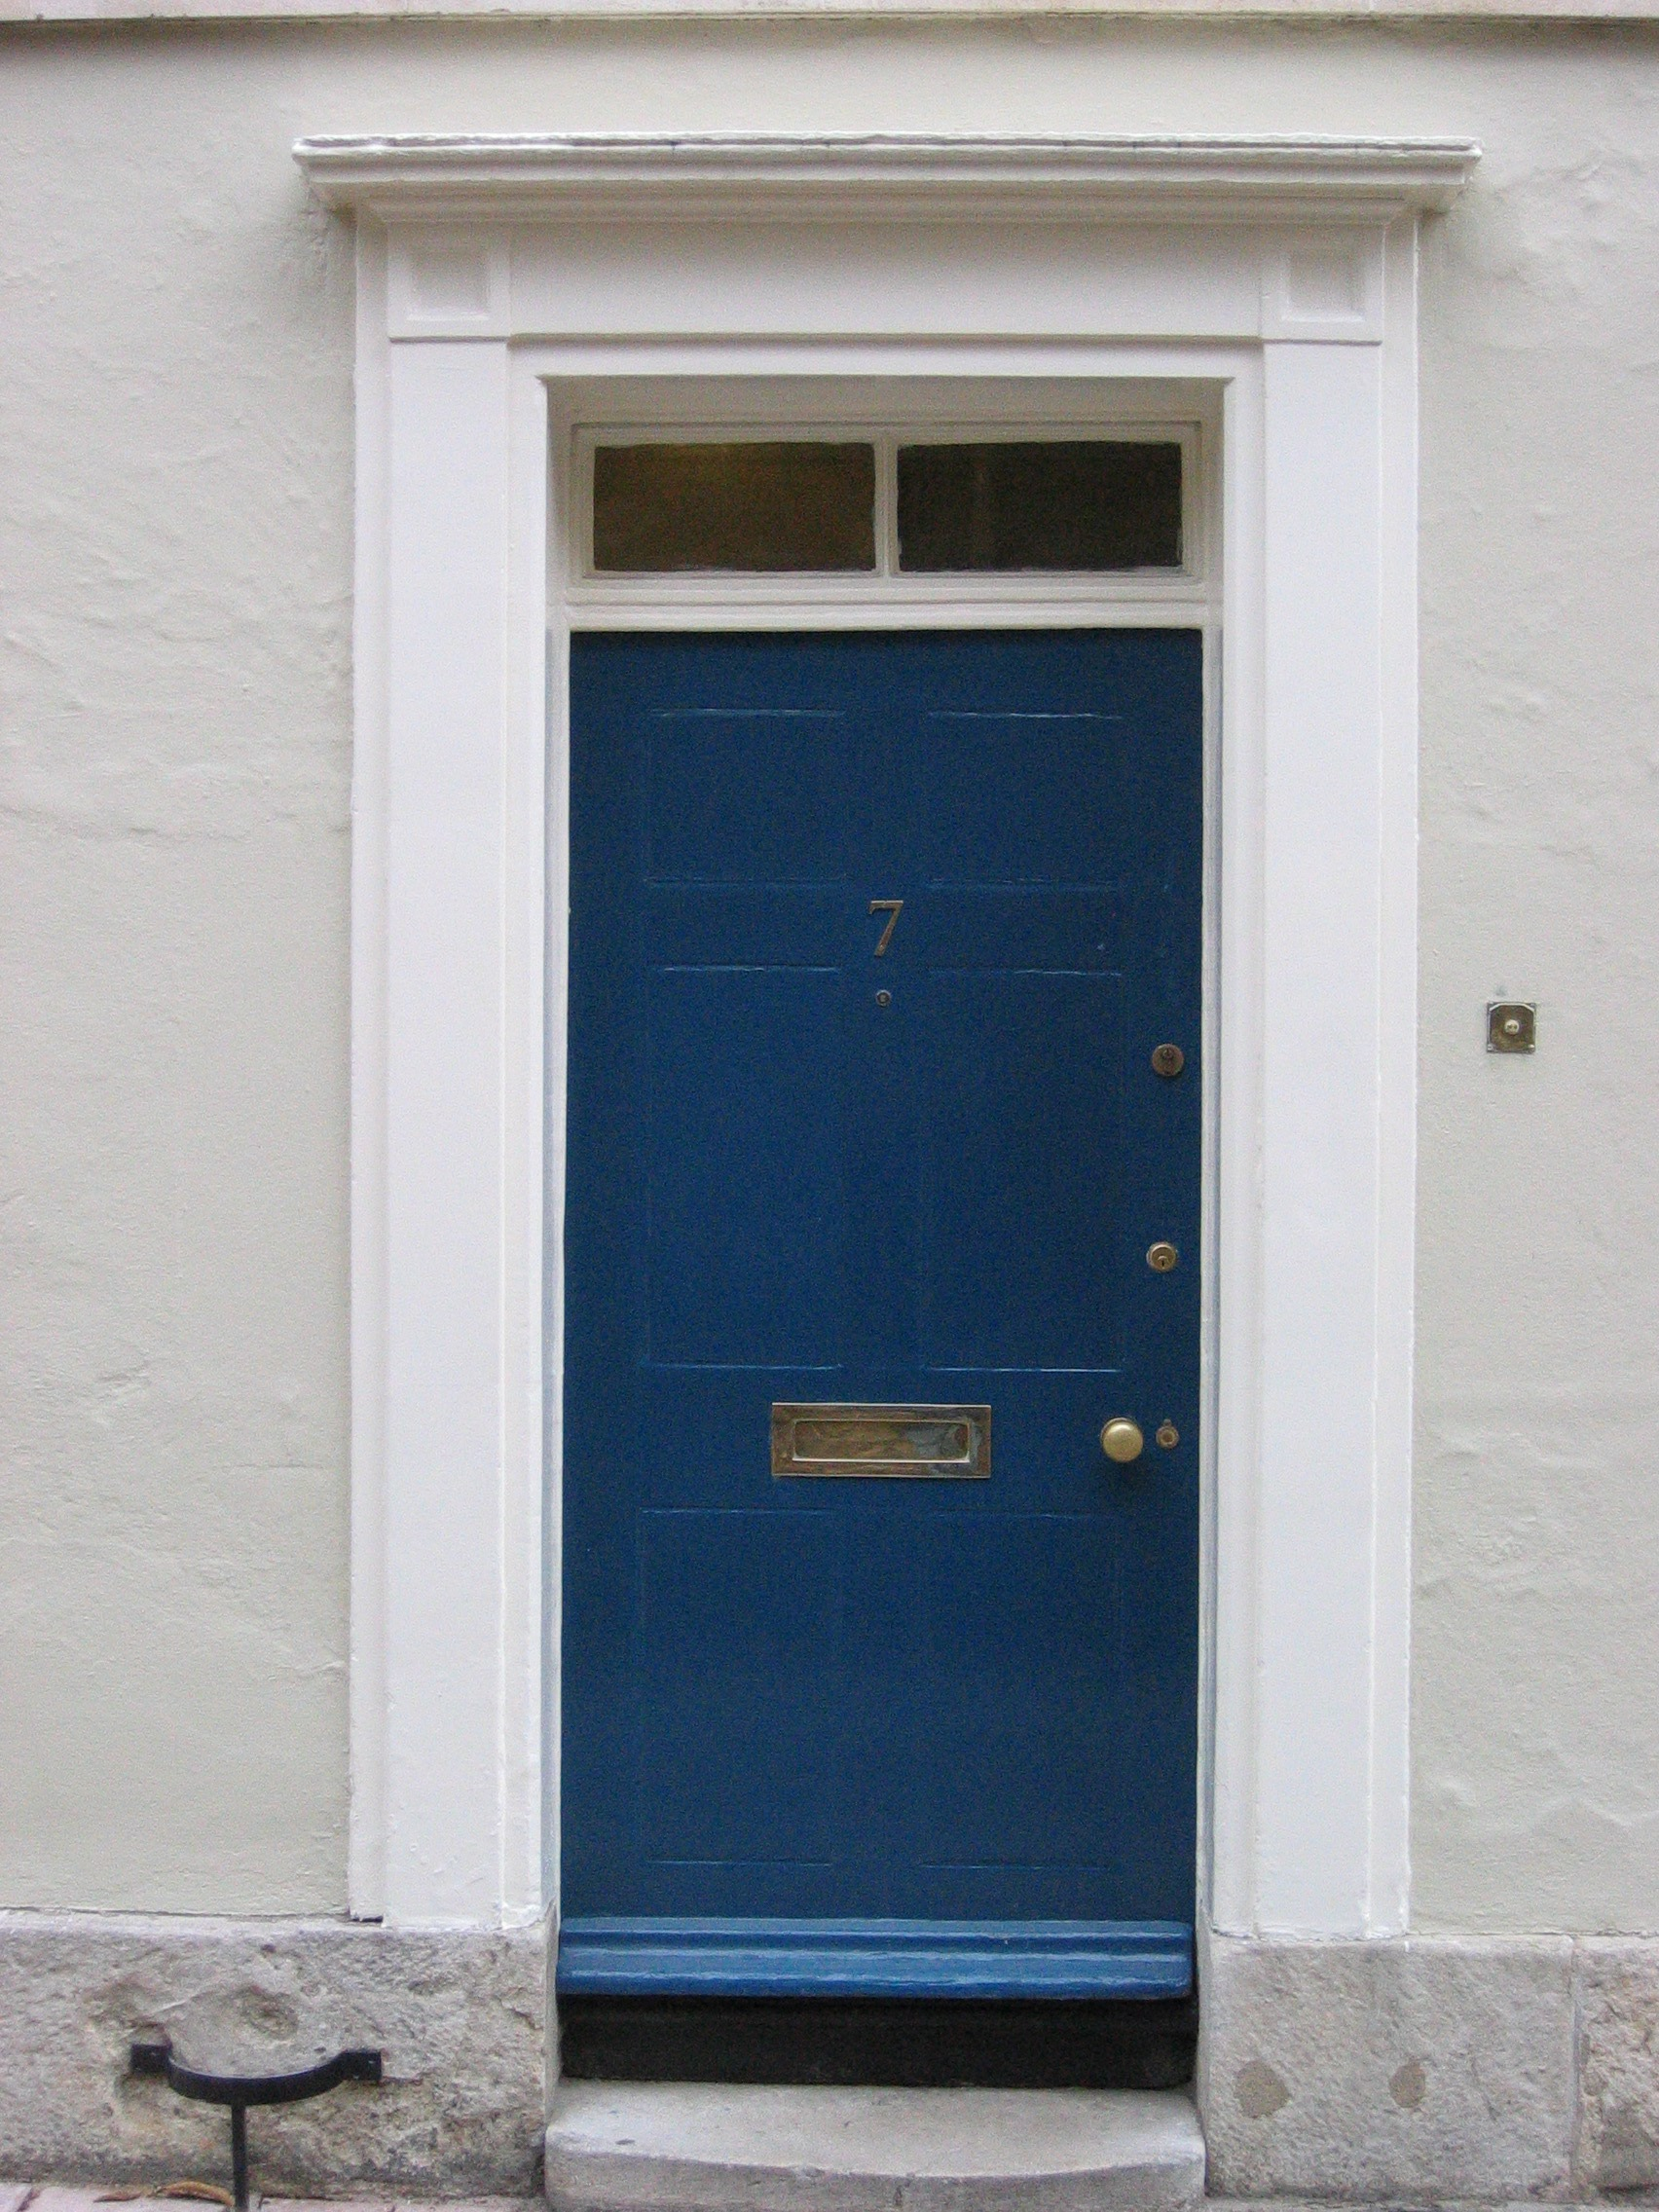 FileBlue Door.jpg & File:Blue Door.jpg - Wikimedia Commons